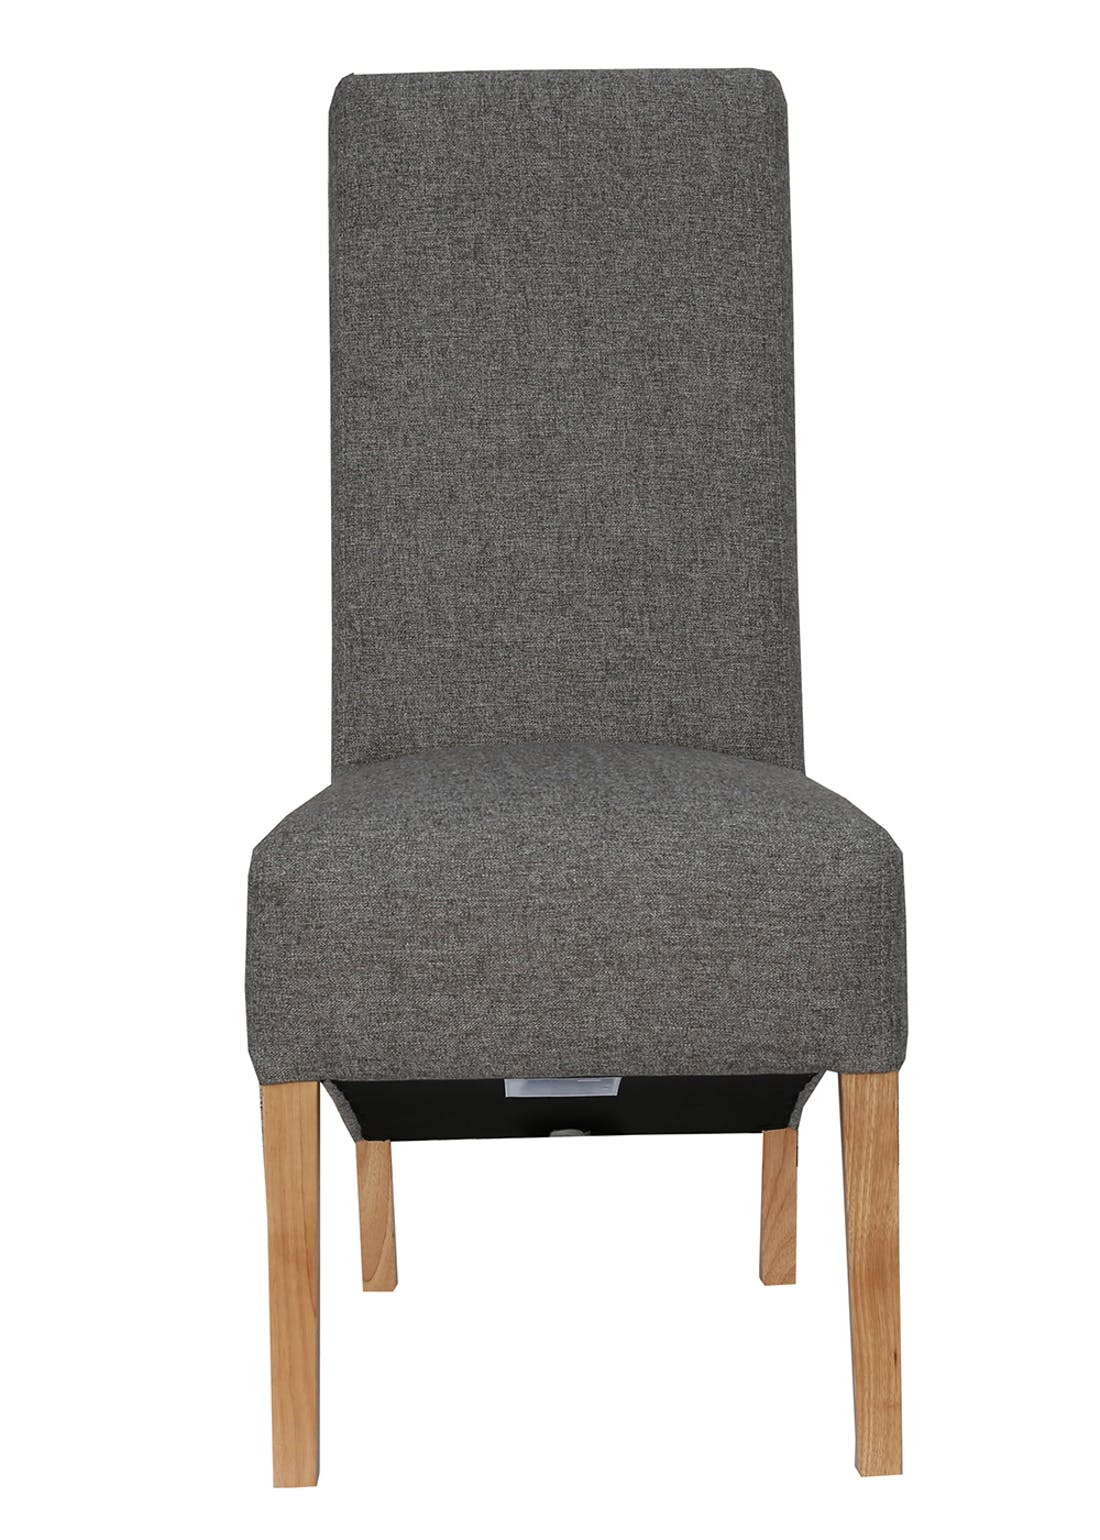 Interiors Direct 2 Pack Arundel Scroll Back Fabric Chairs (105cm x 65cm x 46cm)